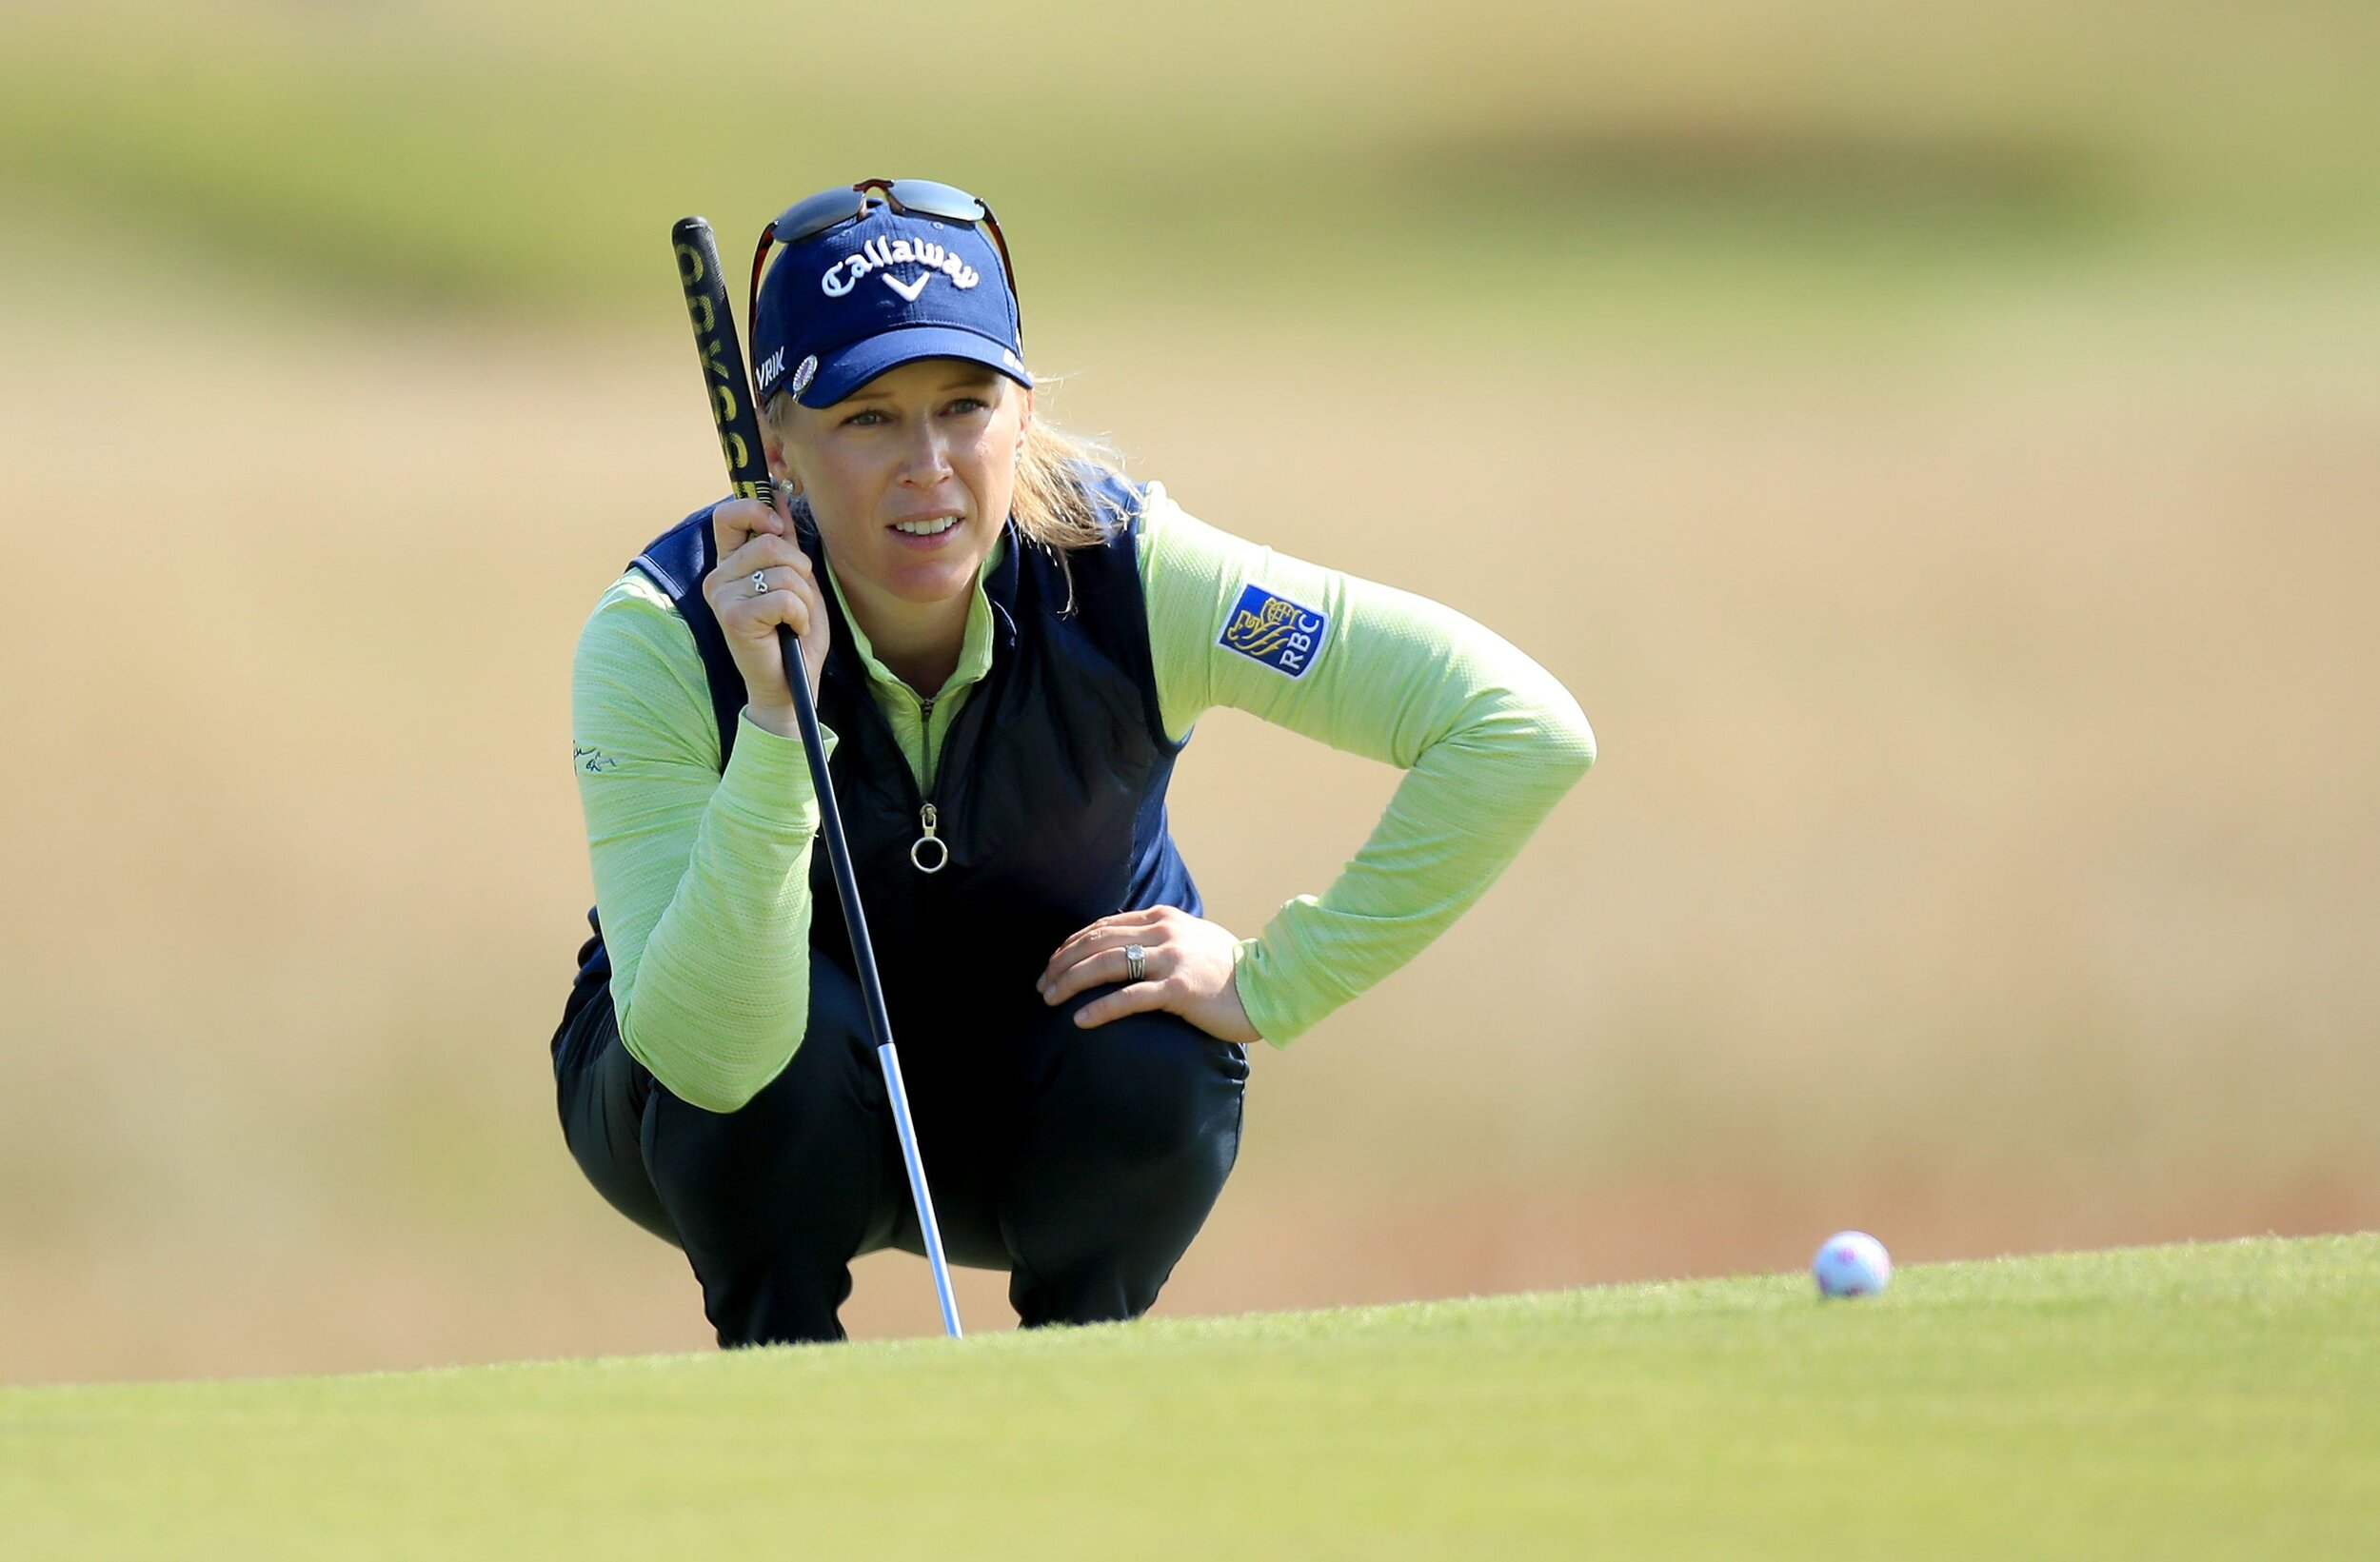 Golfer Morgan Pressel: When you're at the top level, every little bit makes a difference